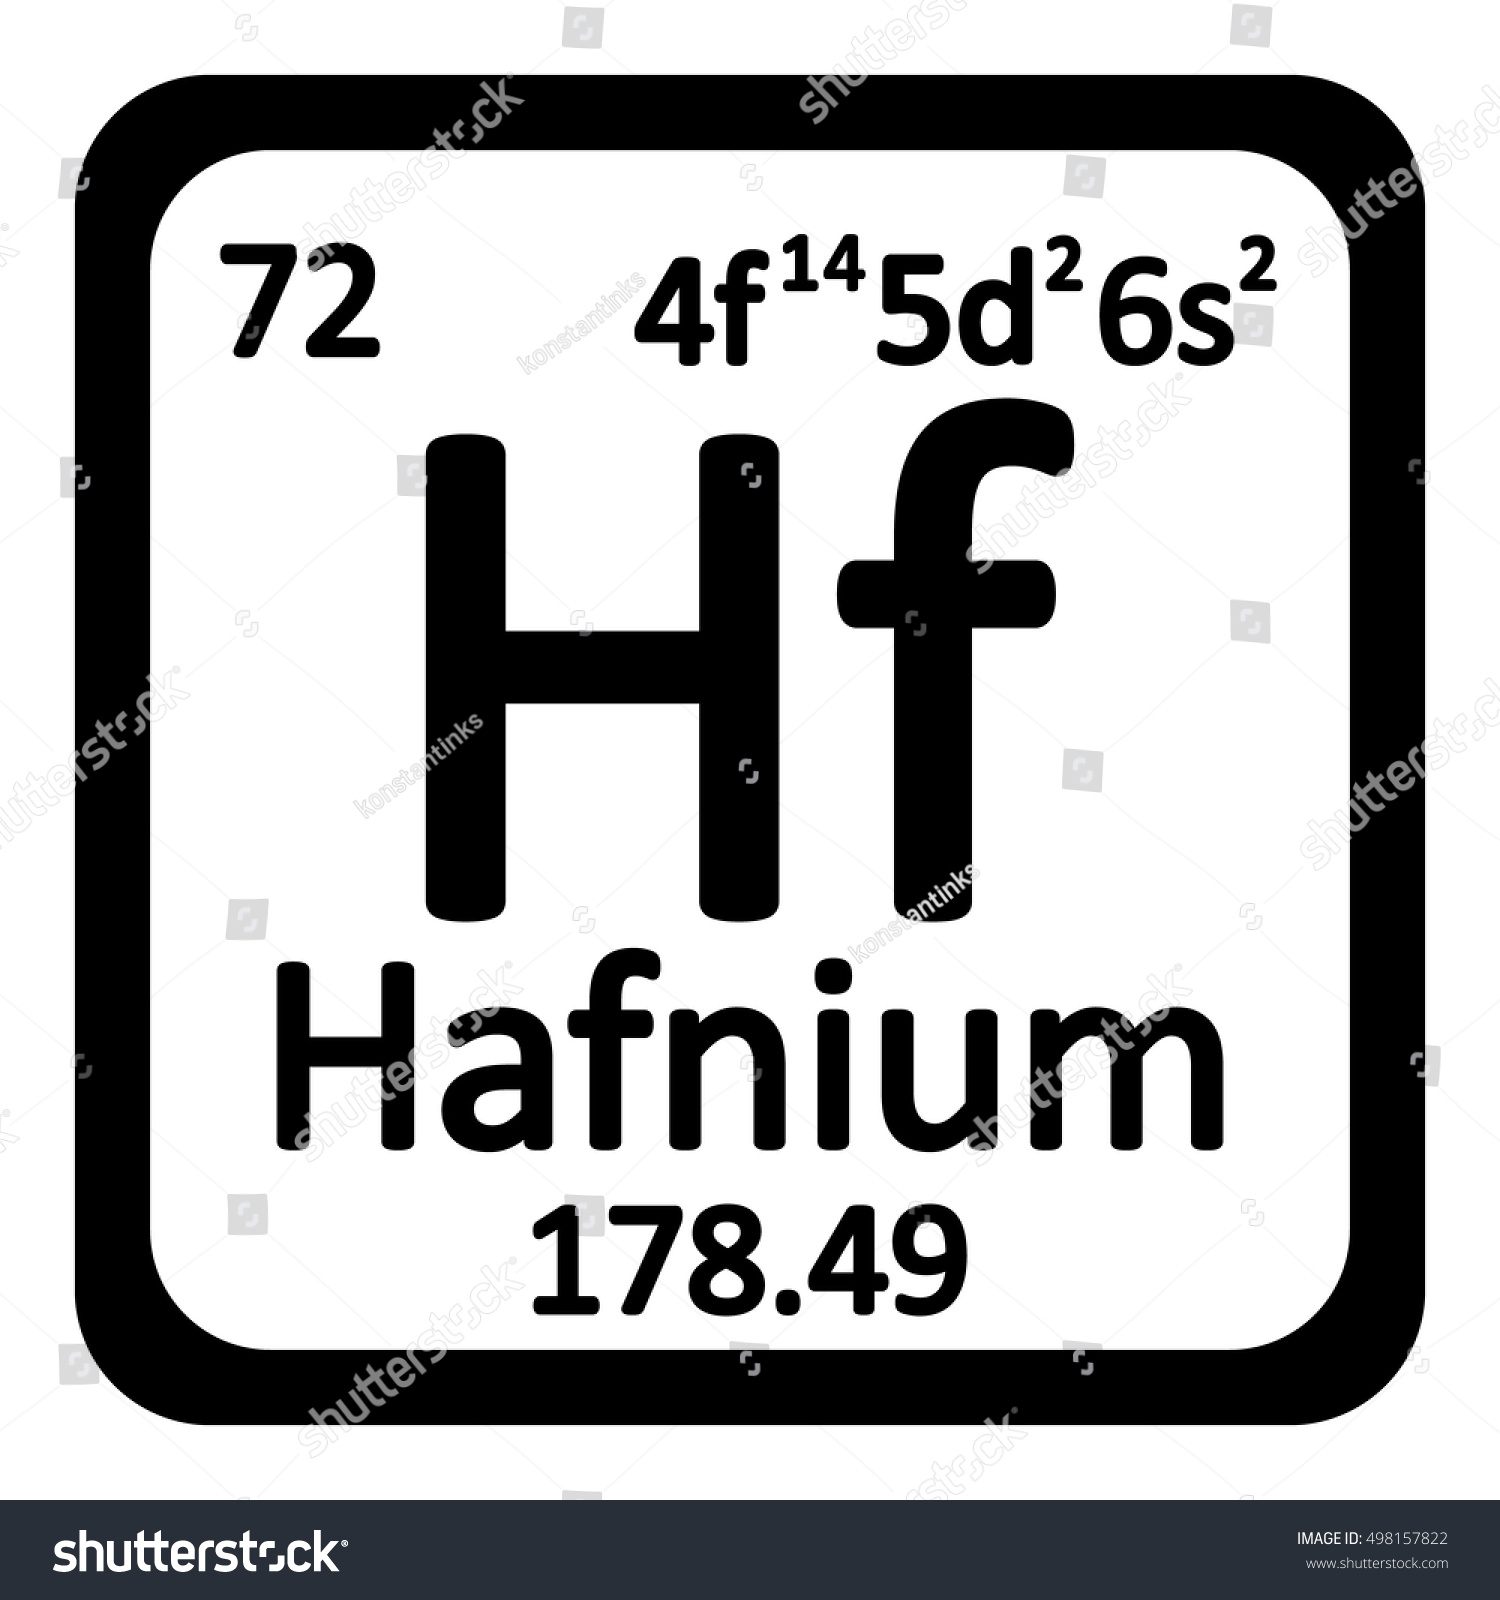 Hf element periodic table image collections periodic table images hf element periodic table choice image periodic table images hf periodic table image collections periodic table gamestrikefo Images